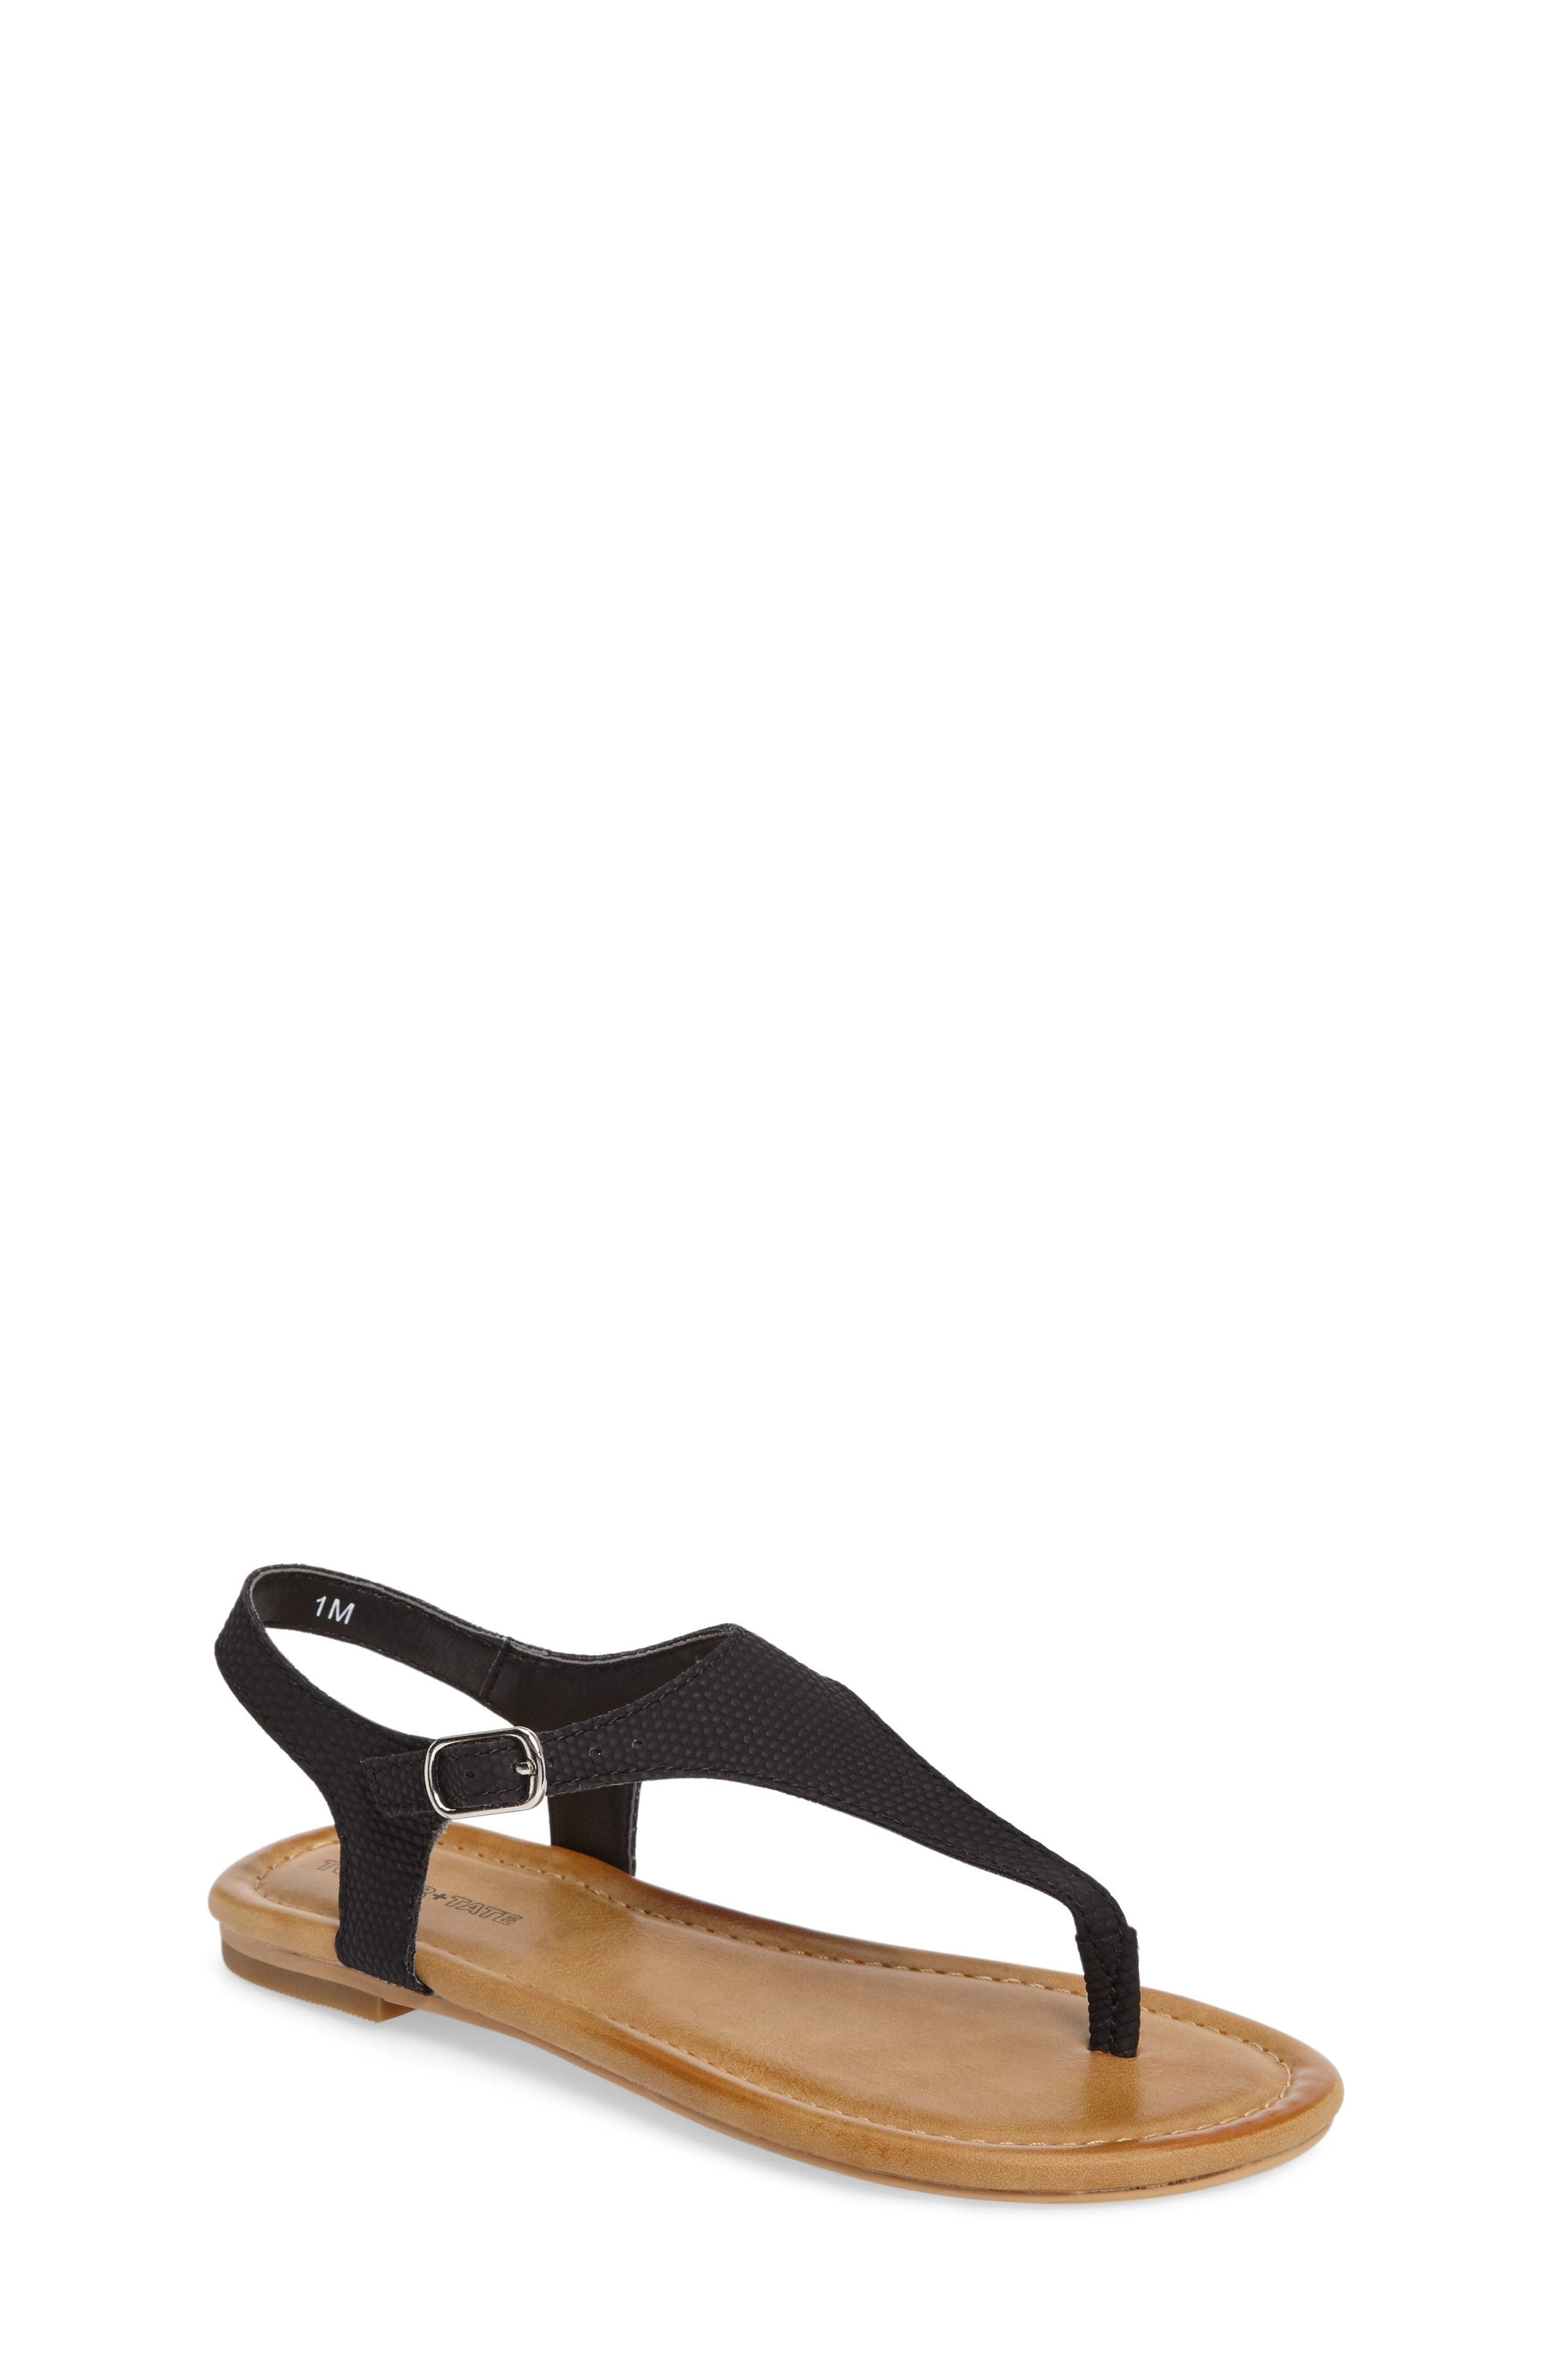 Tucker + Tate Laney Sandal (Walker, Toddler, Little Kid & Big Kid)